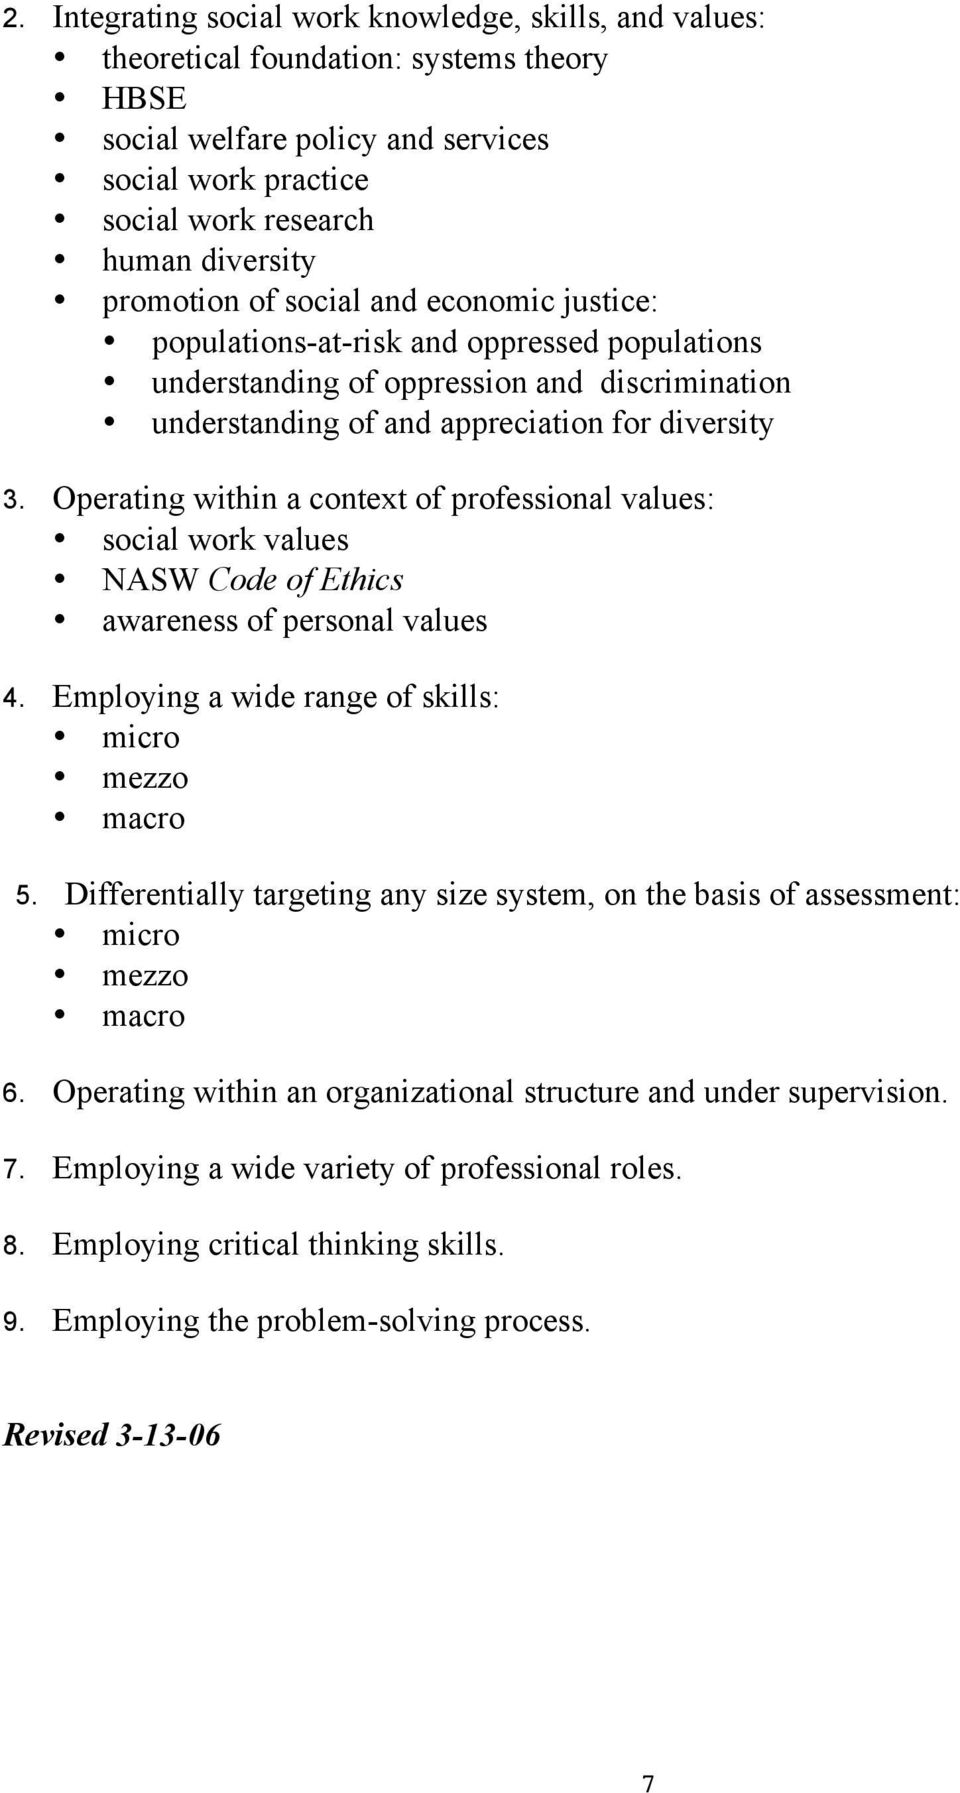 Operating within a context of professional values: social work values NASW Code of Ethics awareness of personal values 4. Employing a wide range of skills: micro mezzo macro 5.